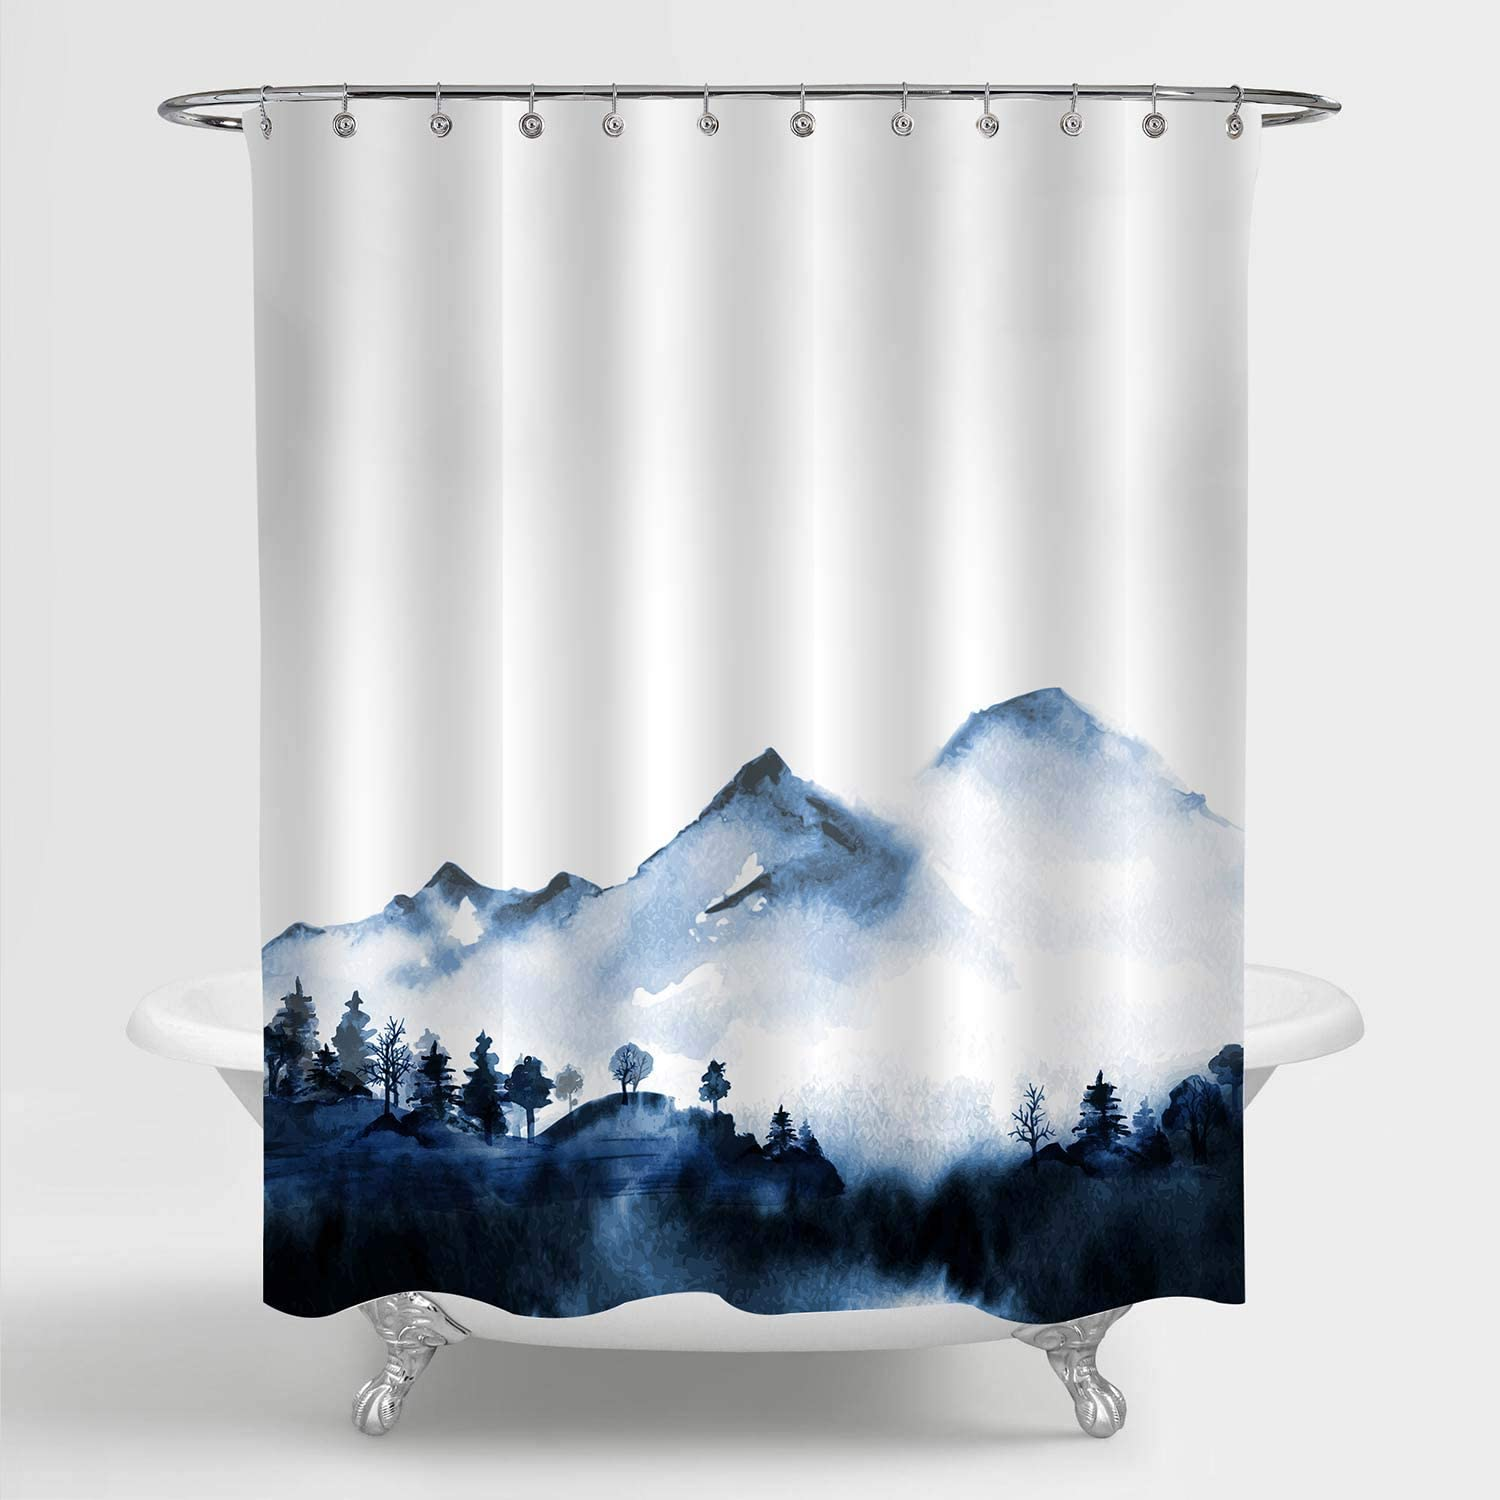 """MitoVilla Foggy Mountain Forest Scenic Shower Curtain for Bathroom Decor, Asian Foggy Mountain Peaks Nature Landscape Bathroom Accessories for Japanese and Chinese Themed Home, Blue, 72"""" W x 72"""" L"""